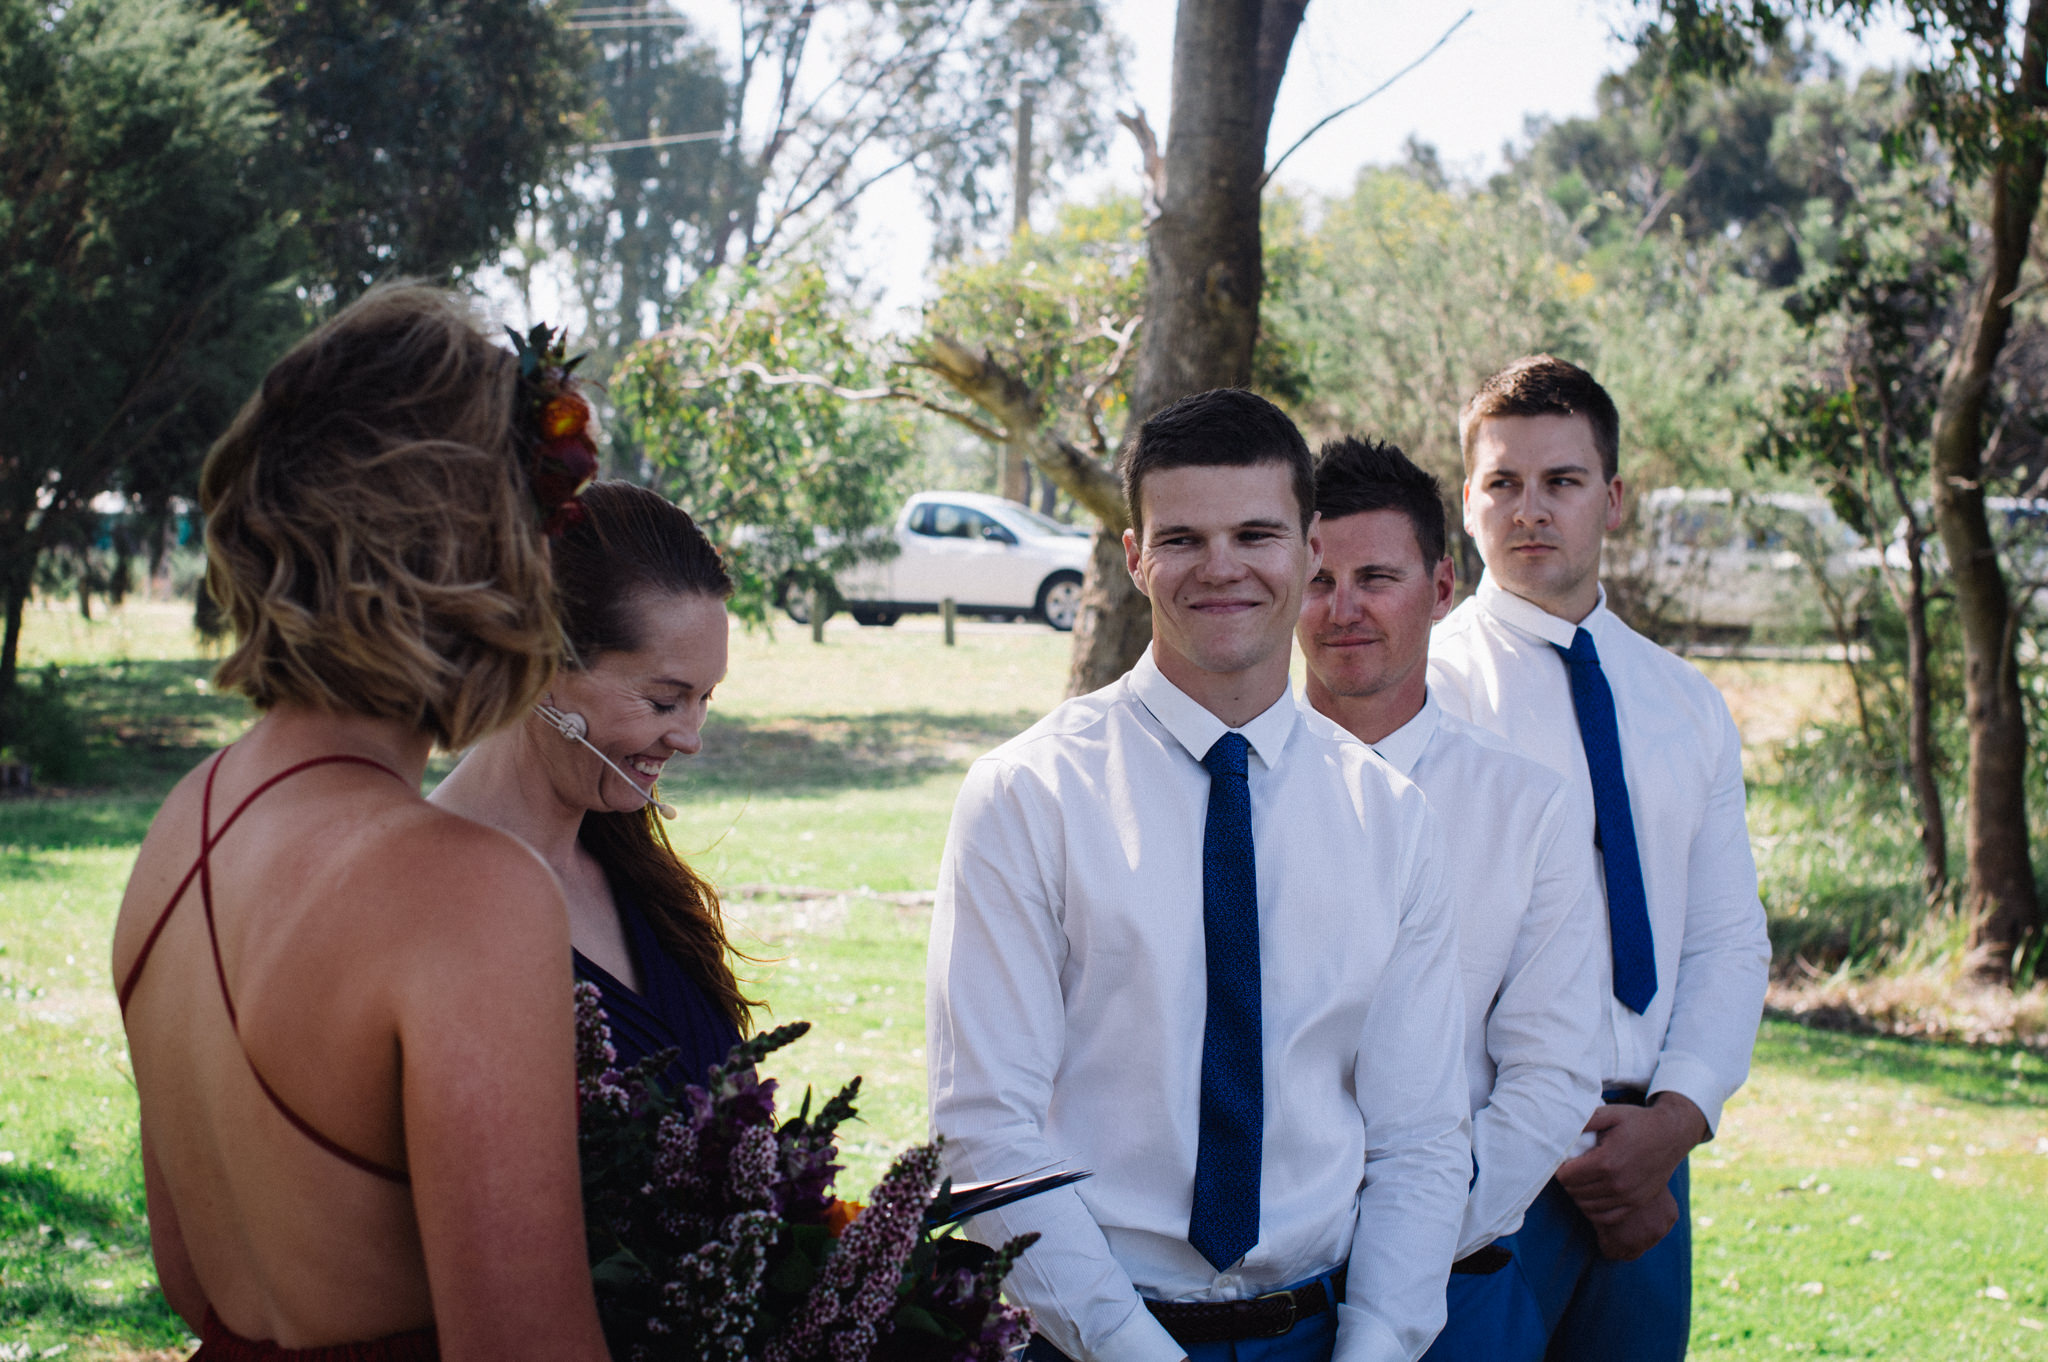 Mandurah Wedding Photographer Ceremony 7